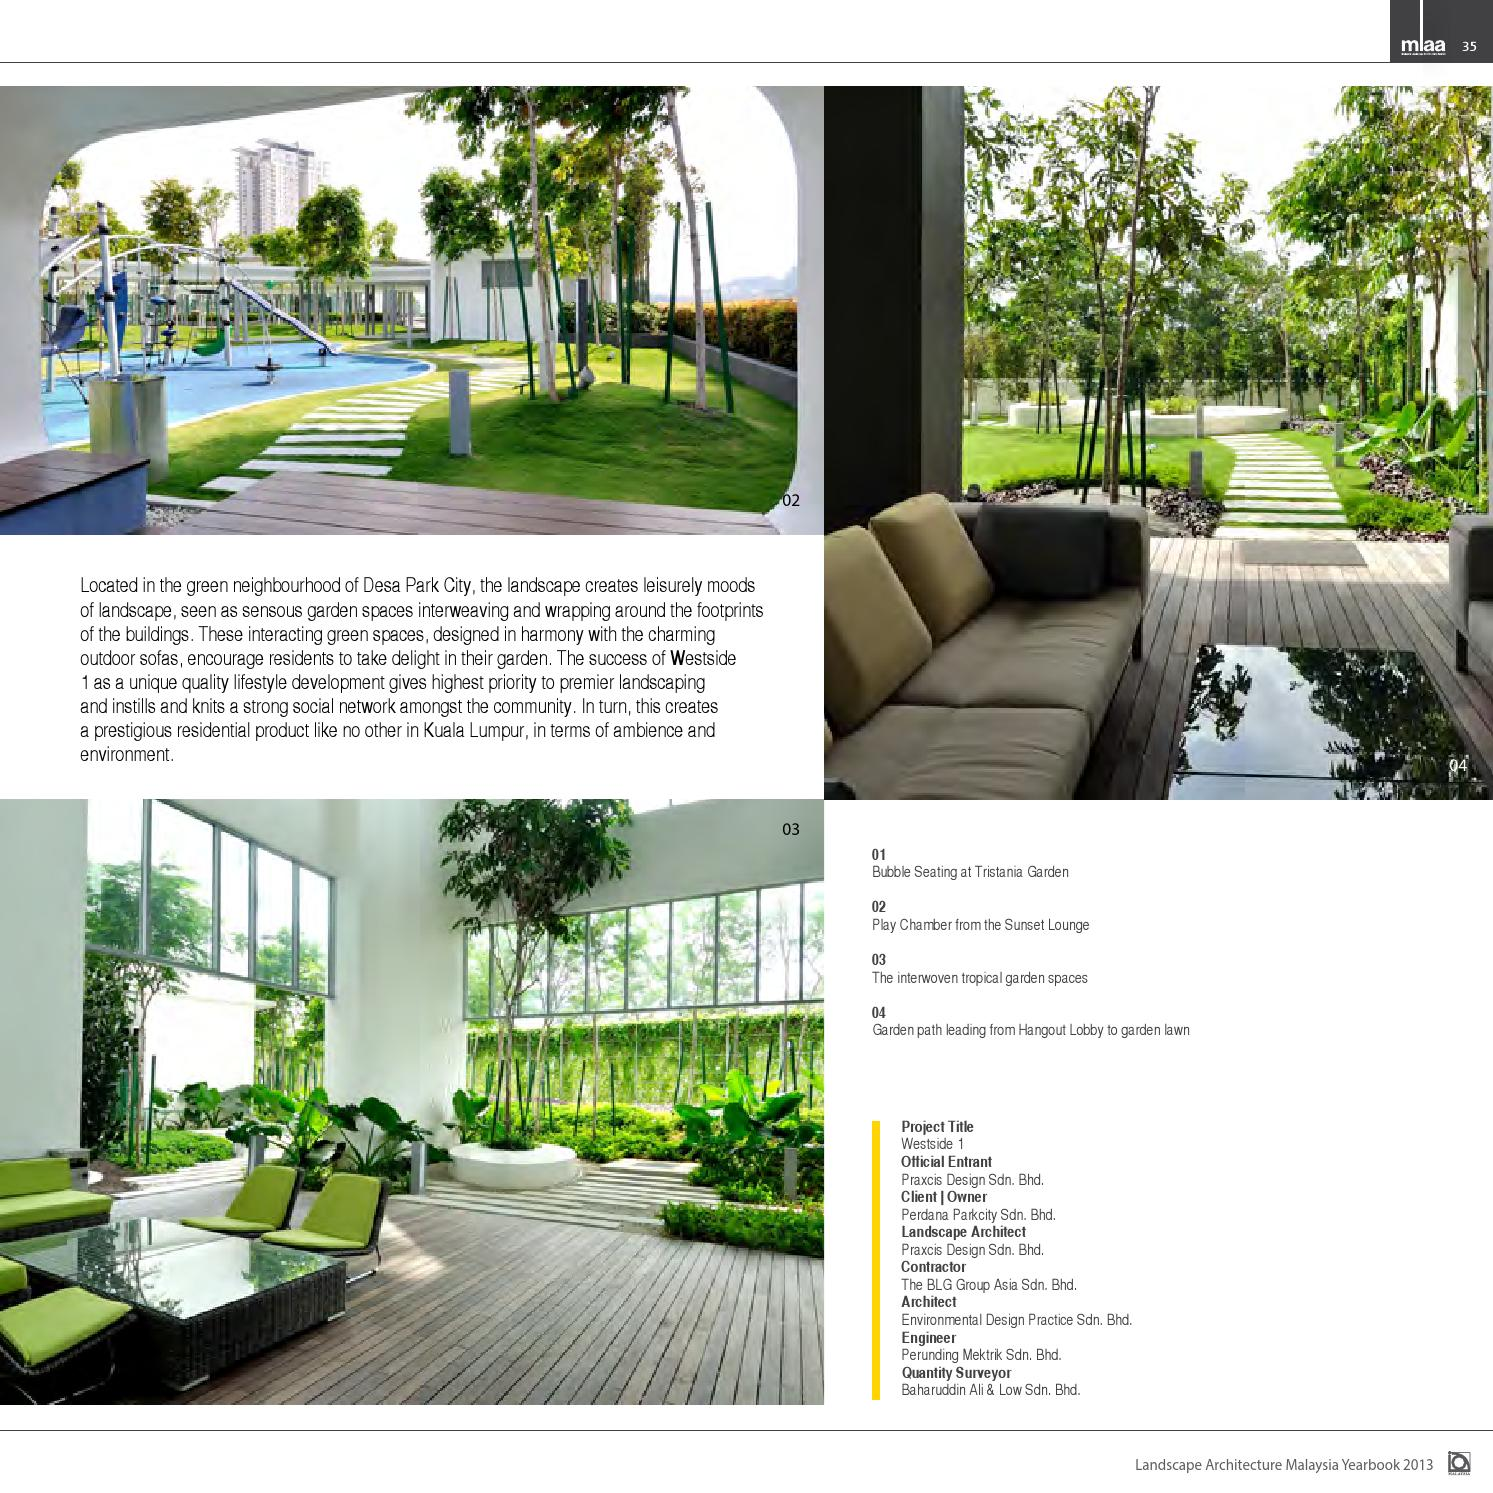 Malaysia Landscape Architecture Yearbook 2013 By Charles Teo Issuu